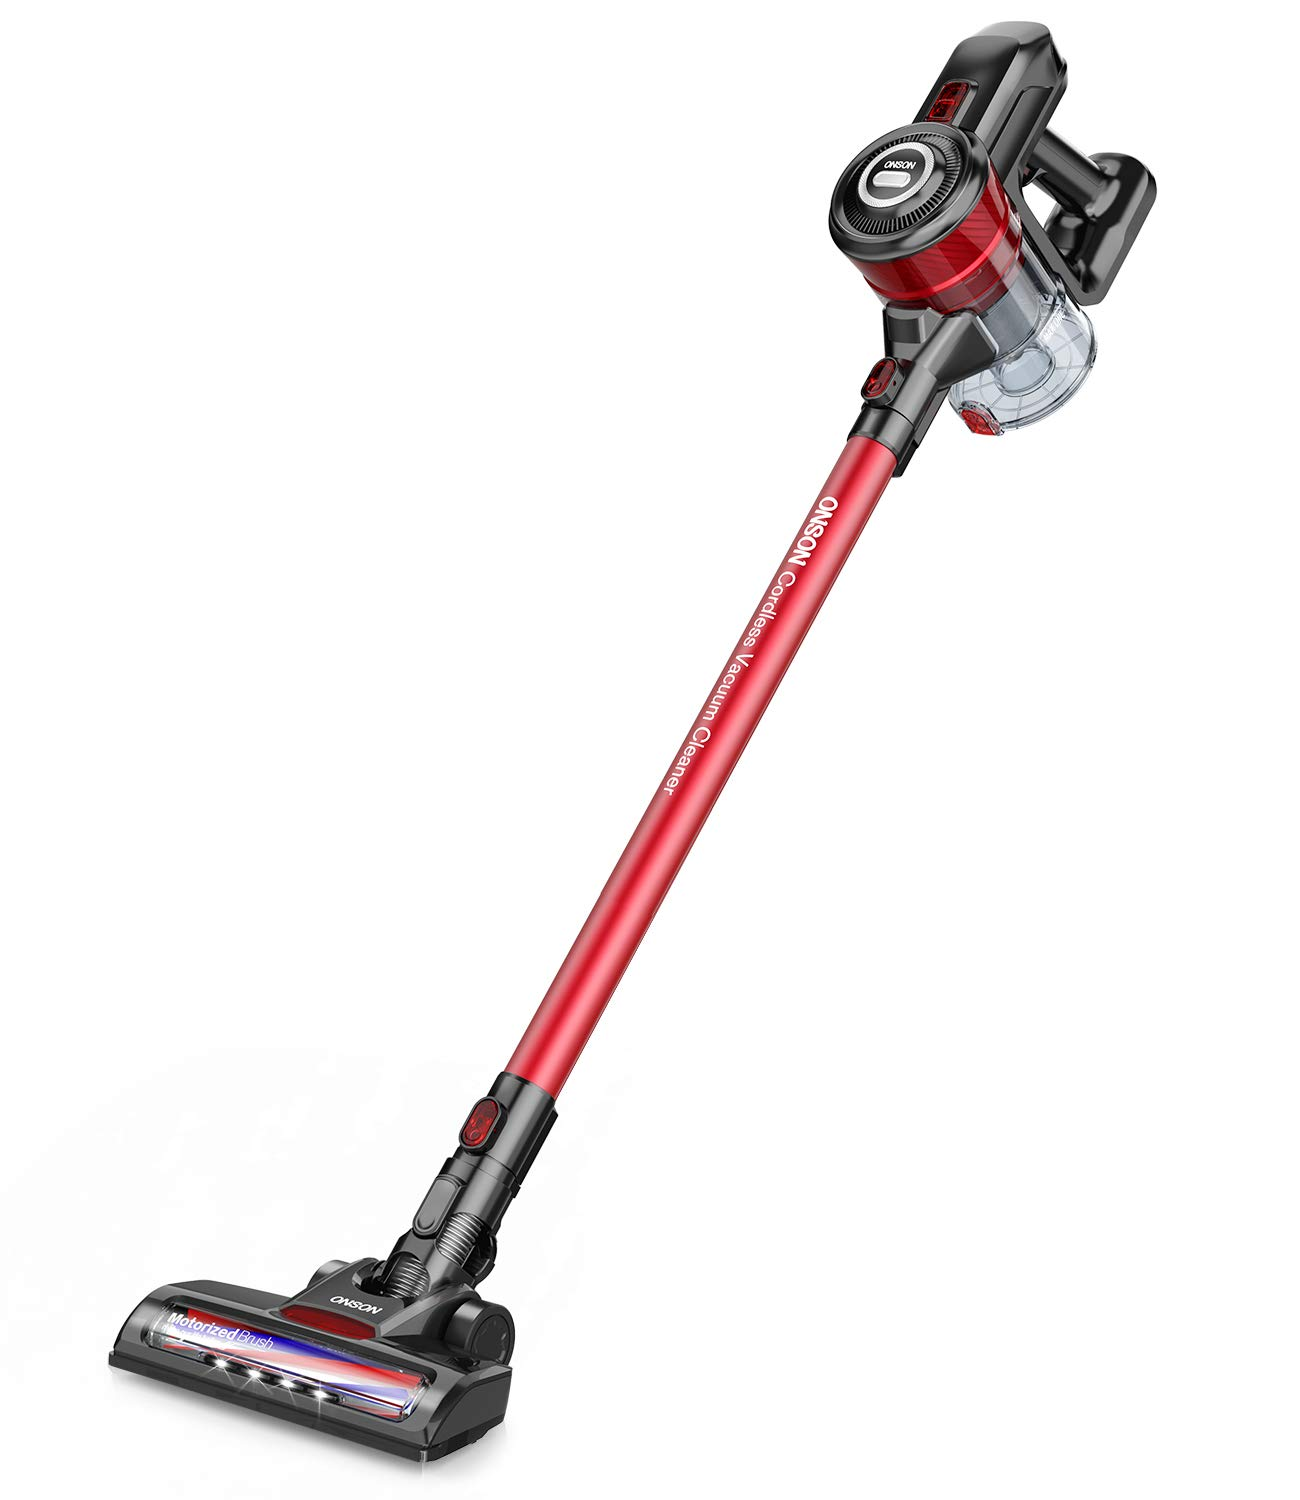 Onson Cordless Vacuum Stick Powerful Cleaning Lightweight